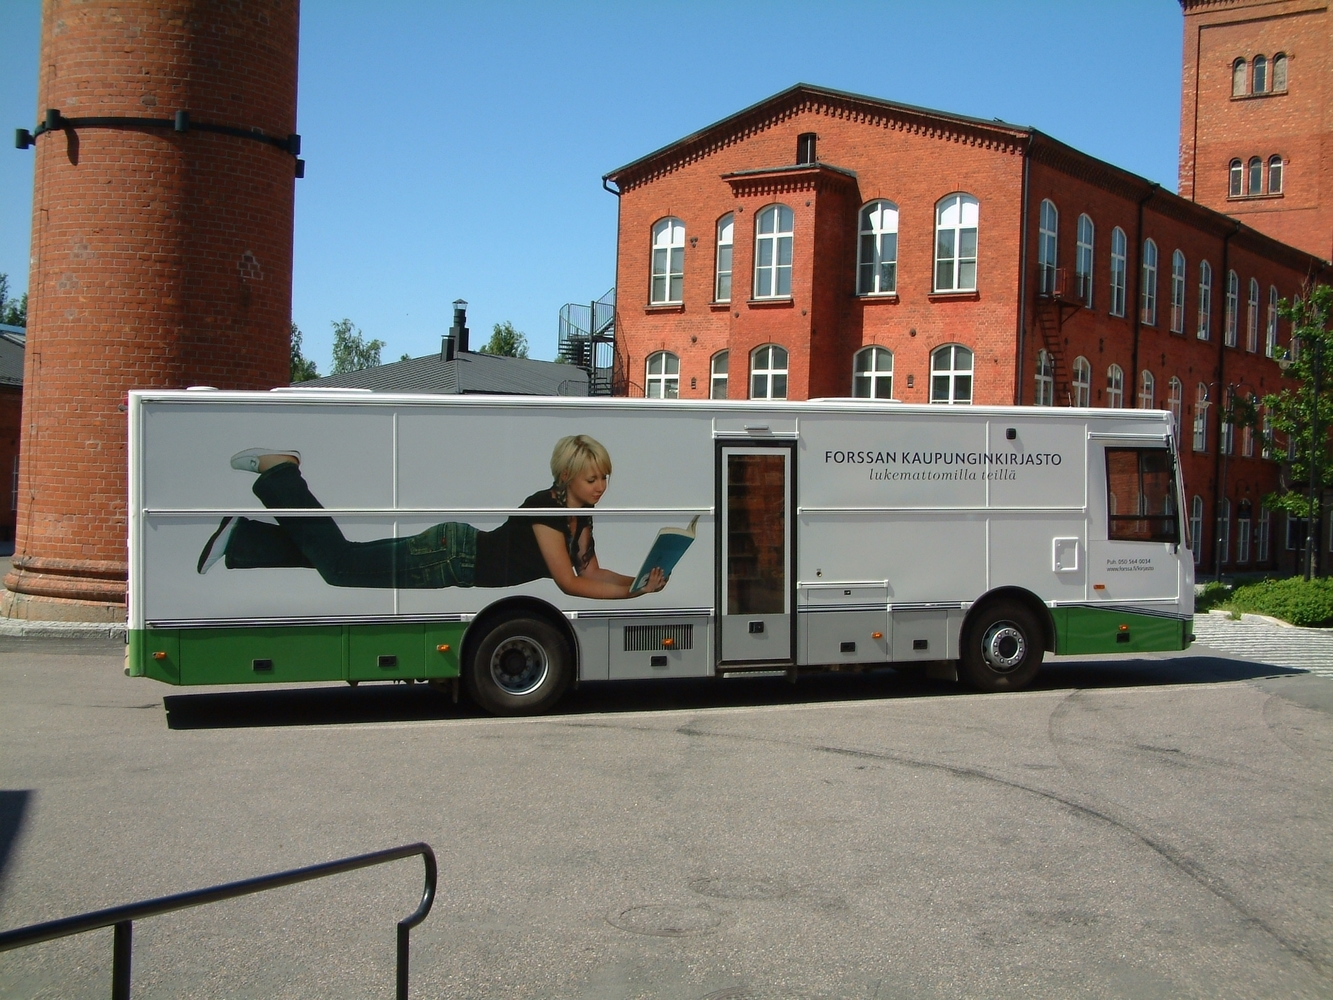 Mobile library (Forssa)